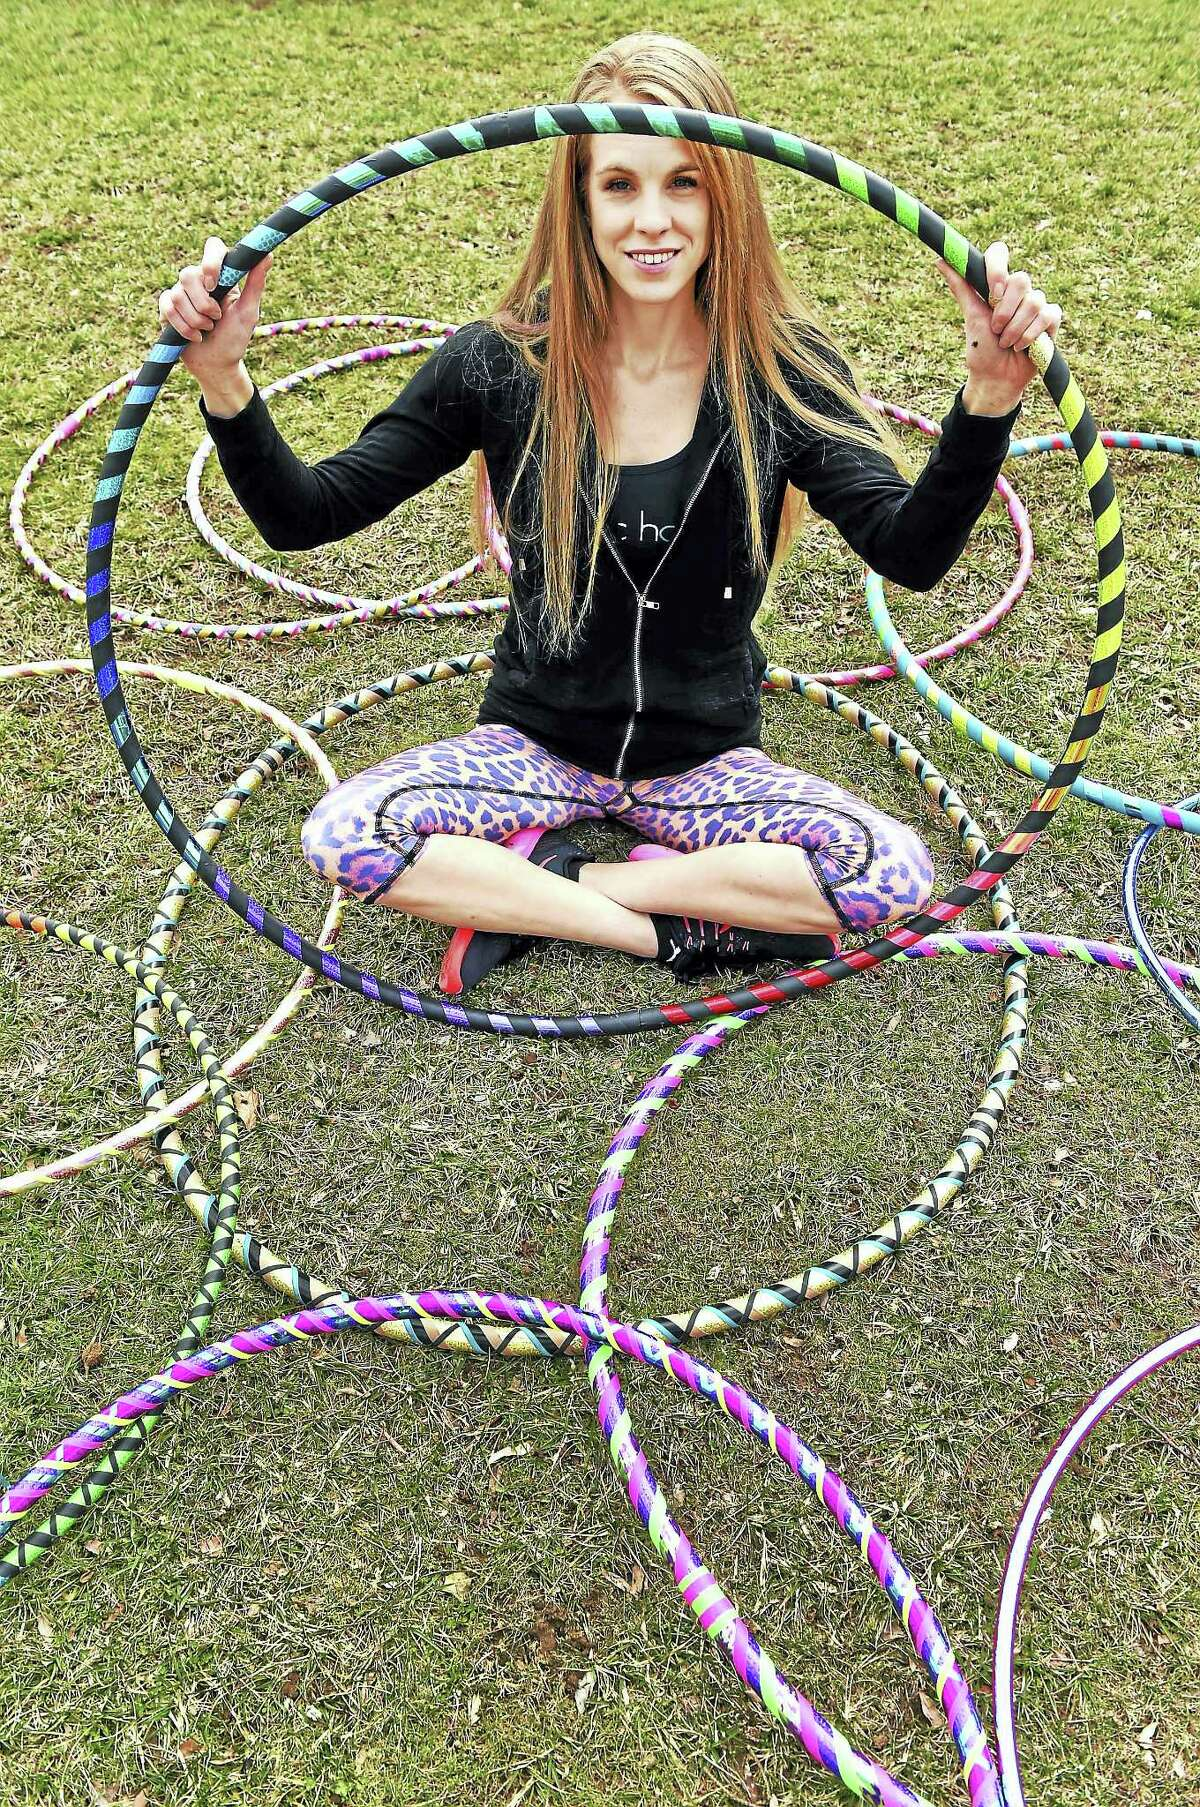 Peter Hvizdak — New Haven RegisterKailey Mitchell of Hipnotic Hoopla of North Branford with her hula hoops on the Branford Green. Mitchell makes custom hula hoops, demonstrates and performs with the hula hoop at a variety of events and gives fitness classes along the Shoreline using the hula hoop.